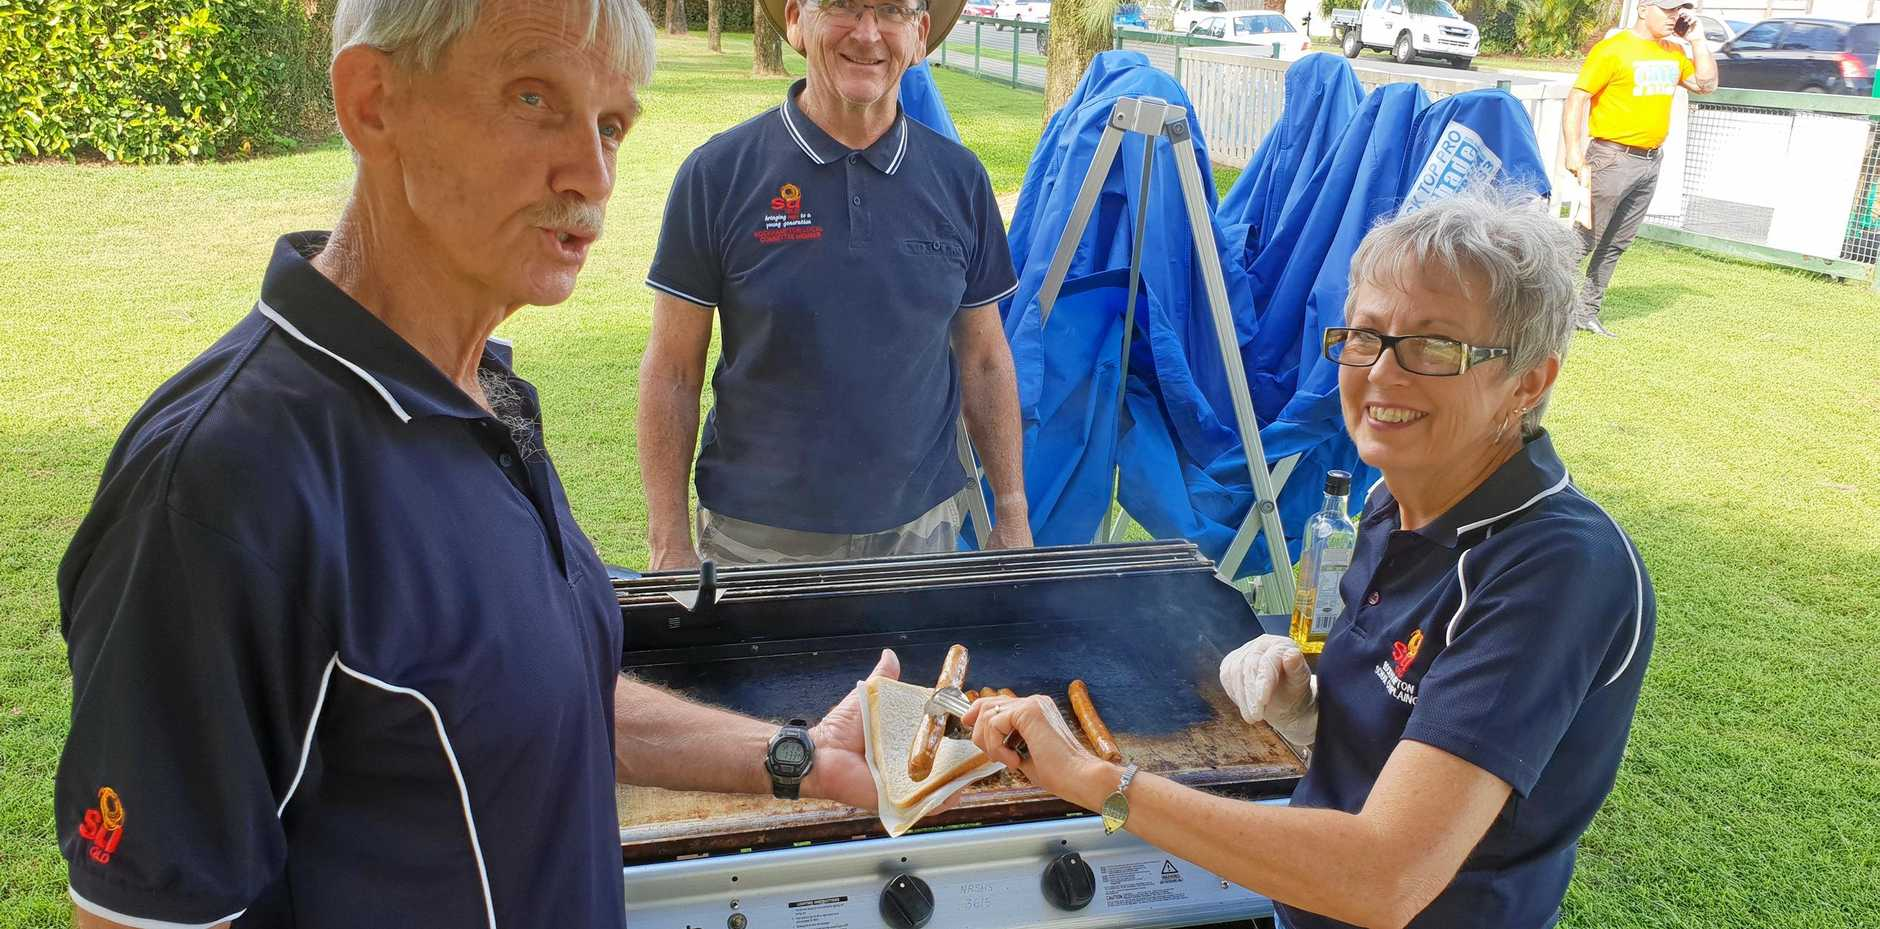 REINFORCEMENTS REQUIRED: Nev Thwaite, Bill Tomsen and Leslie Scott needed more sausages after their sausage stall at North Rockhampton High School ran out of supplies today.